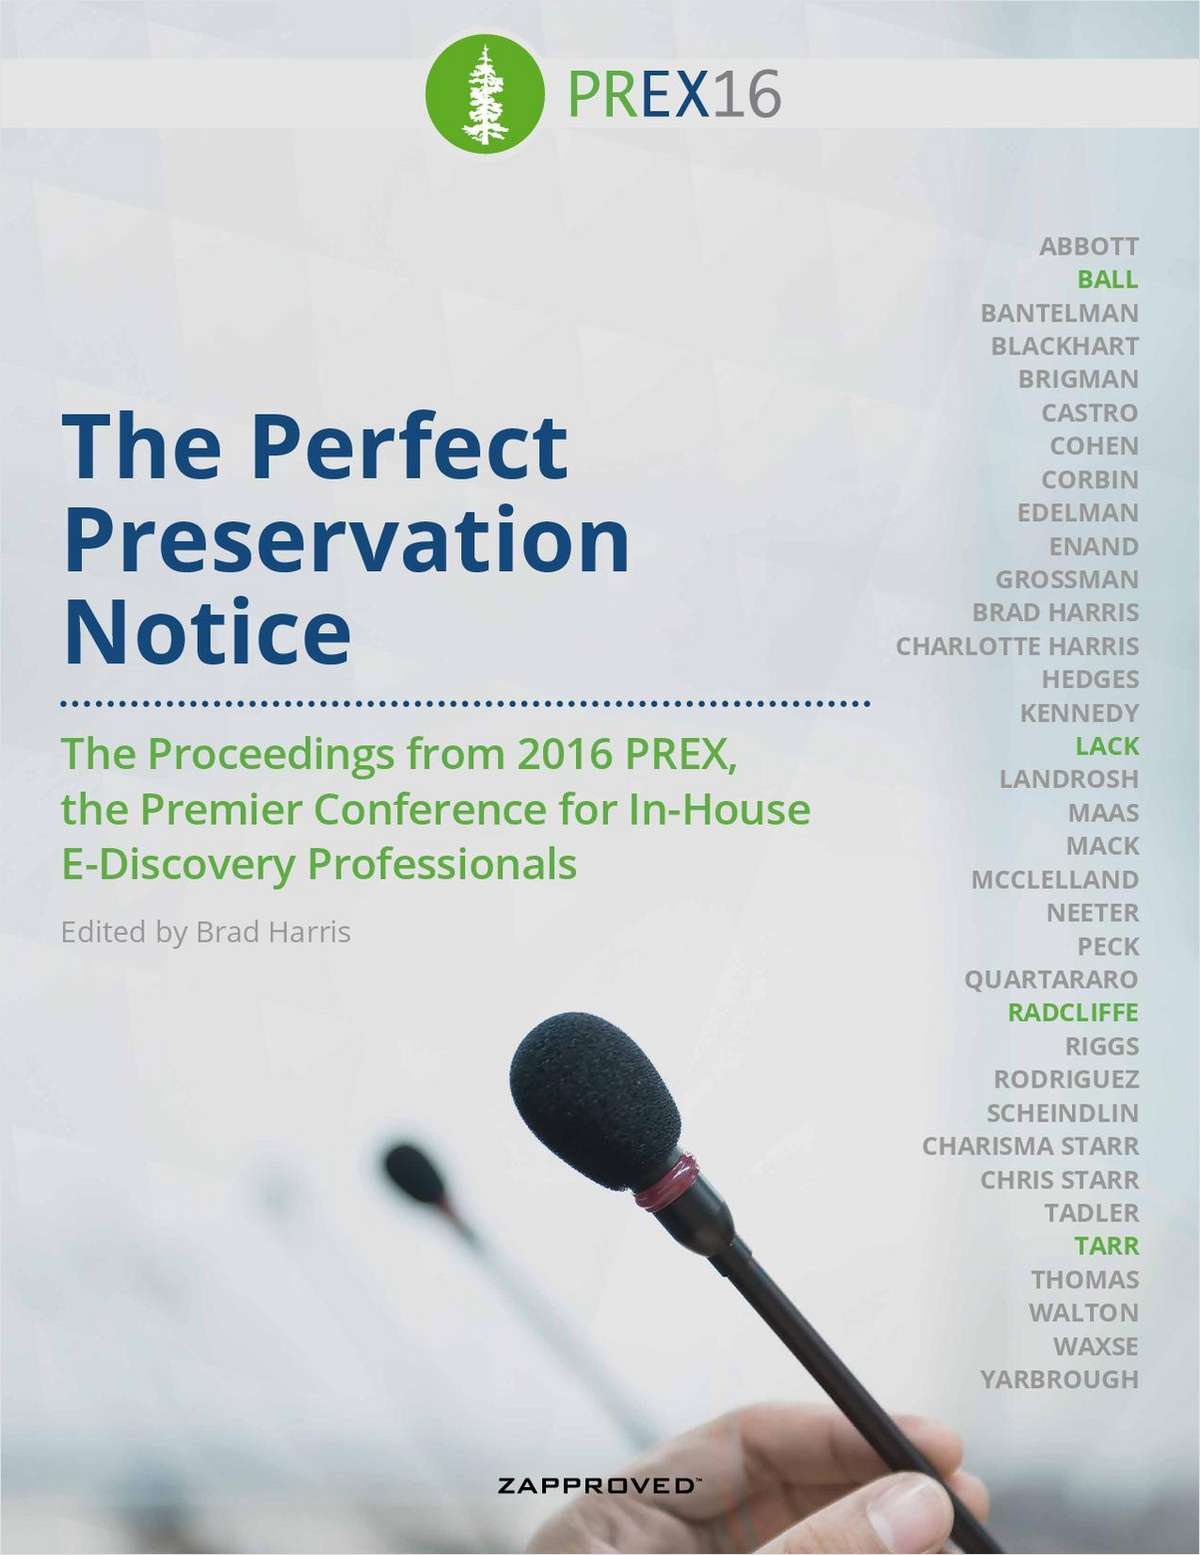 2016 PREX Practical: The Perfect Preservation Notice RECAP